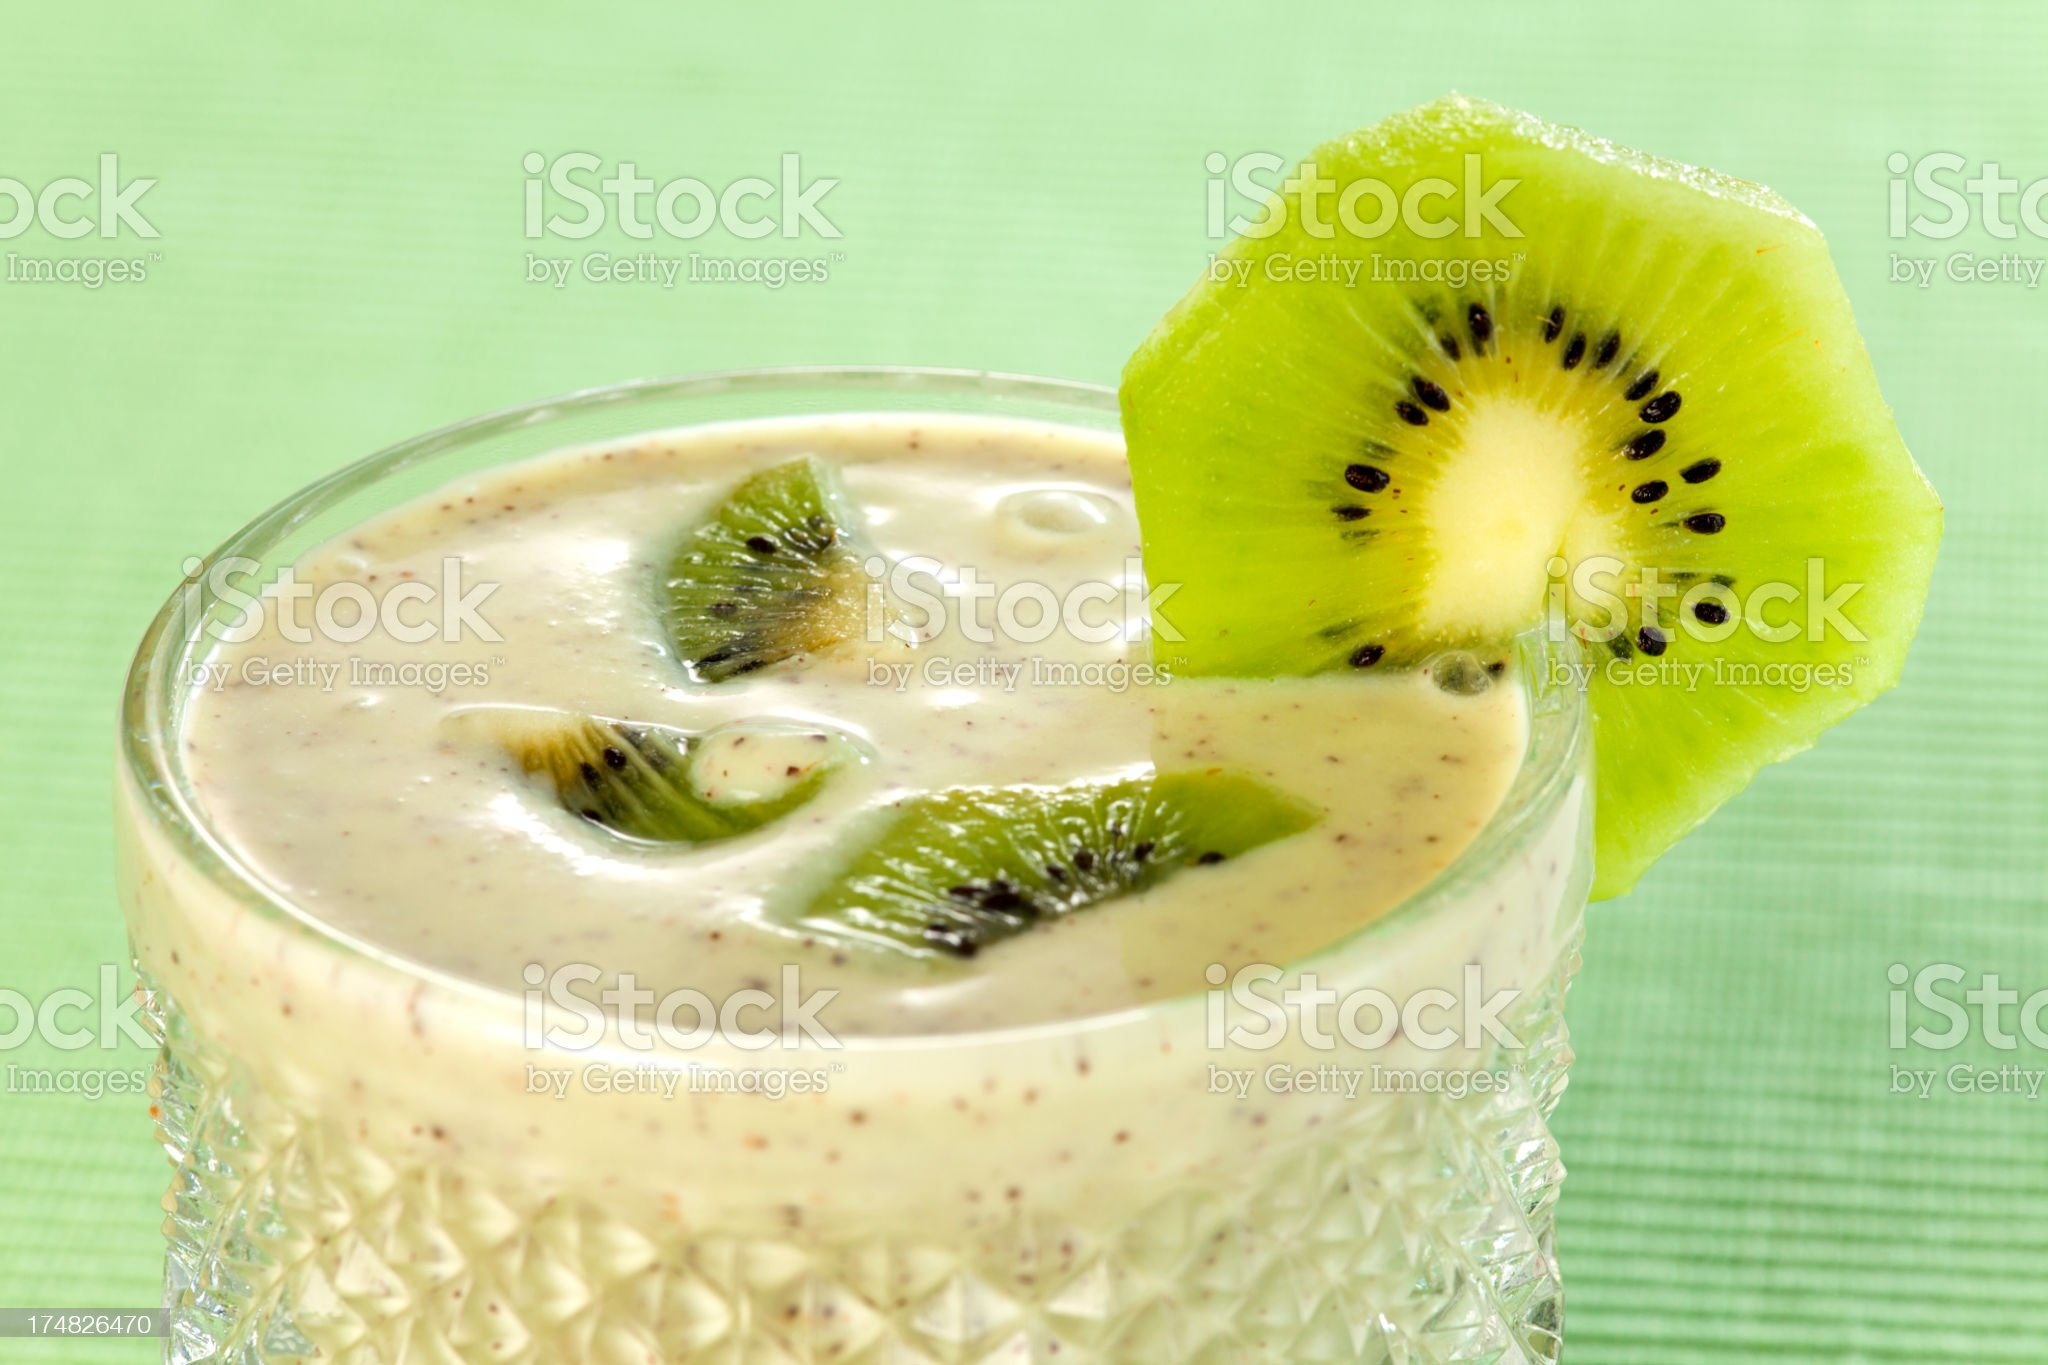 Kiwi and Banana Smoothie royalty-free stock photo